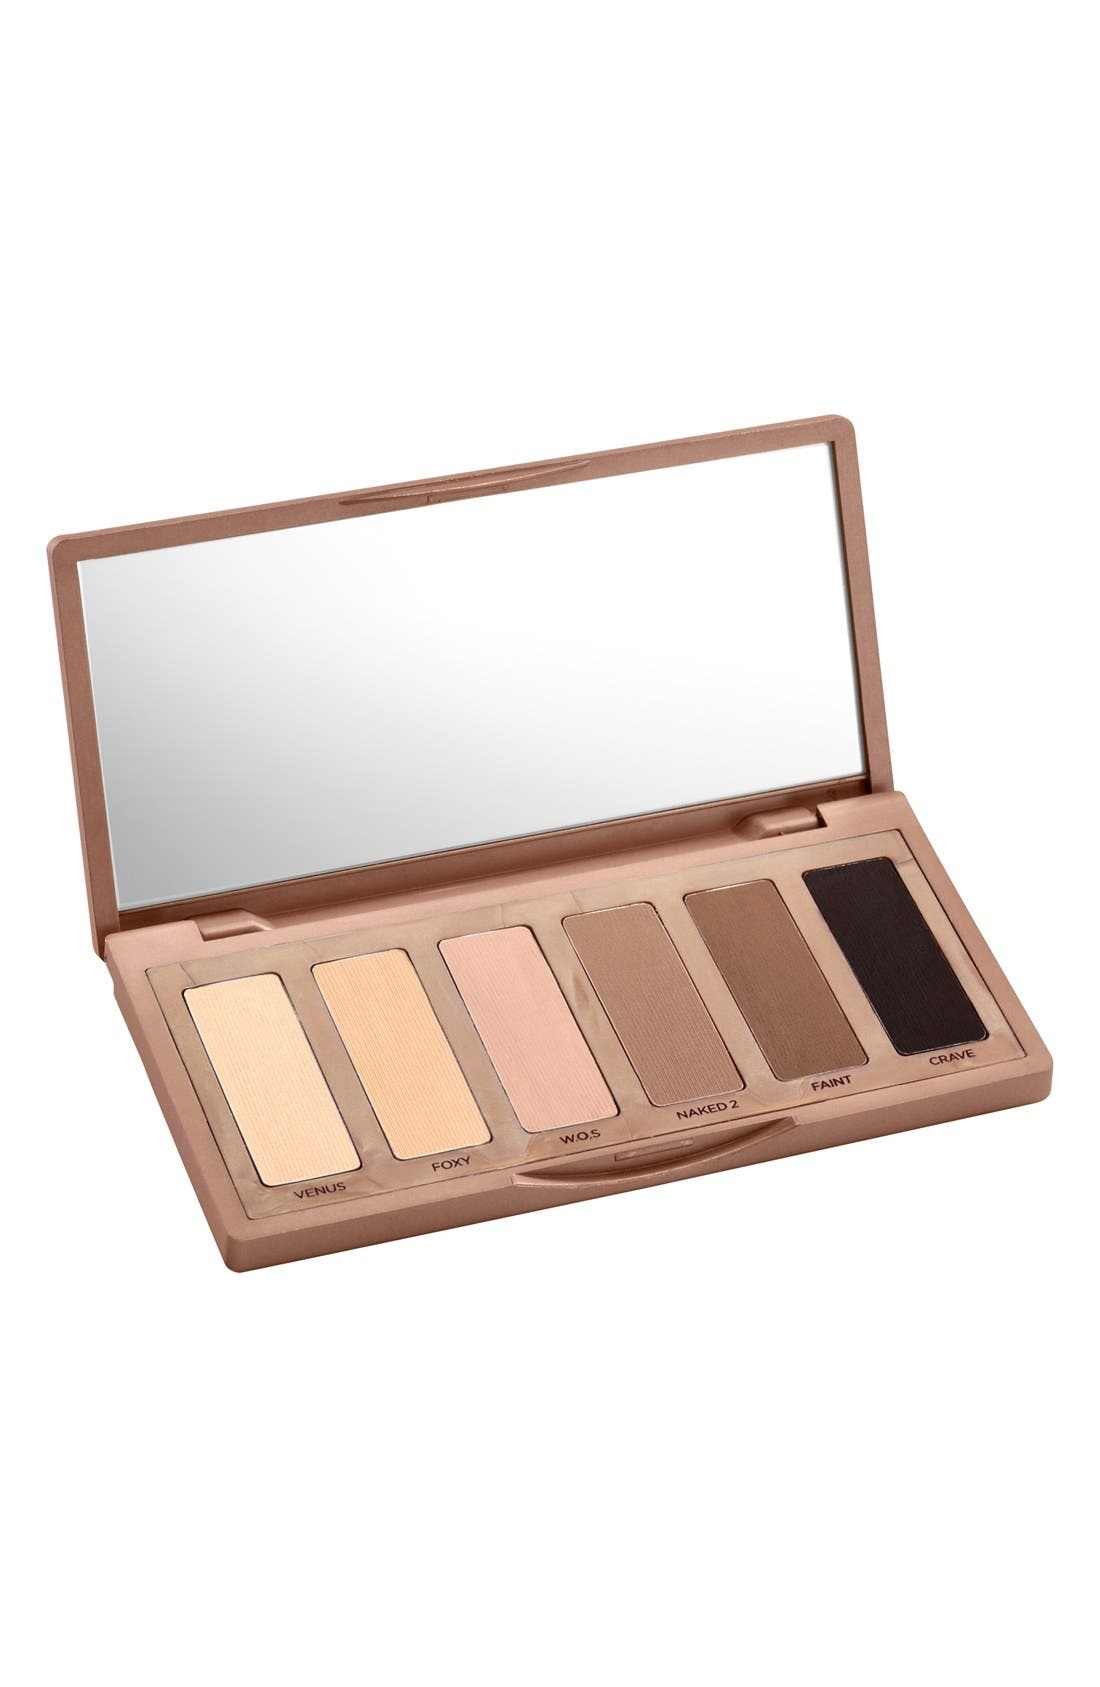 Naked Basics Palette,                         Main,                         color, 002